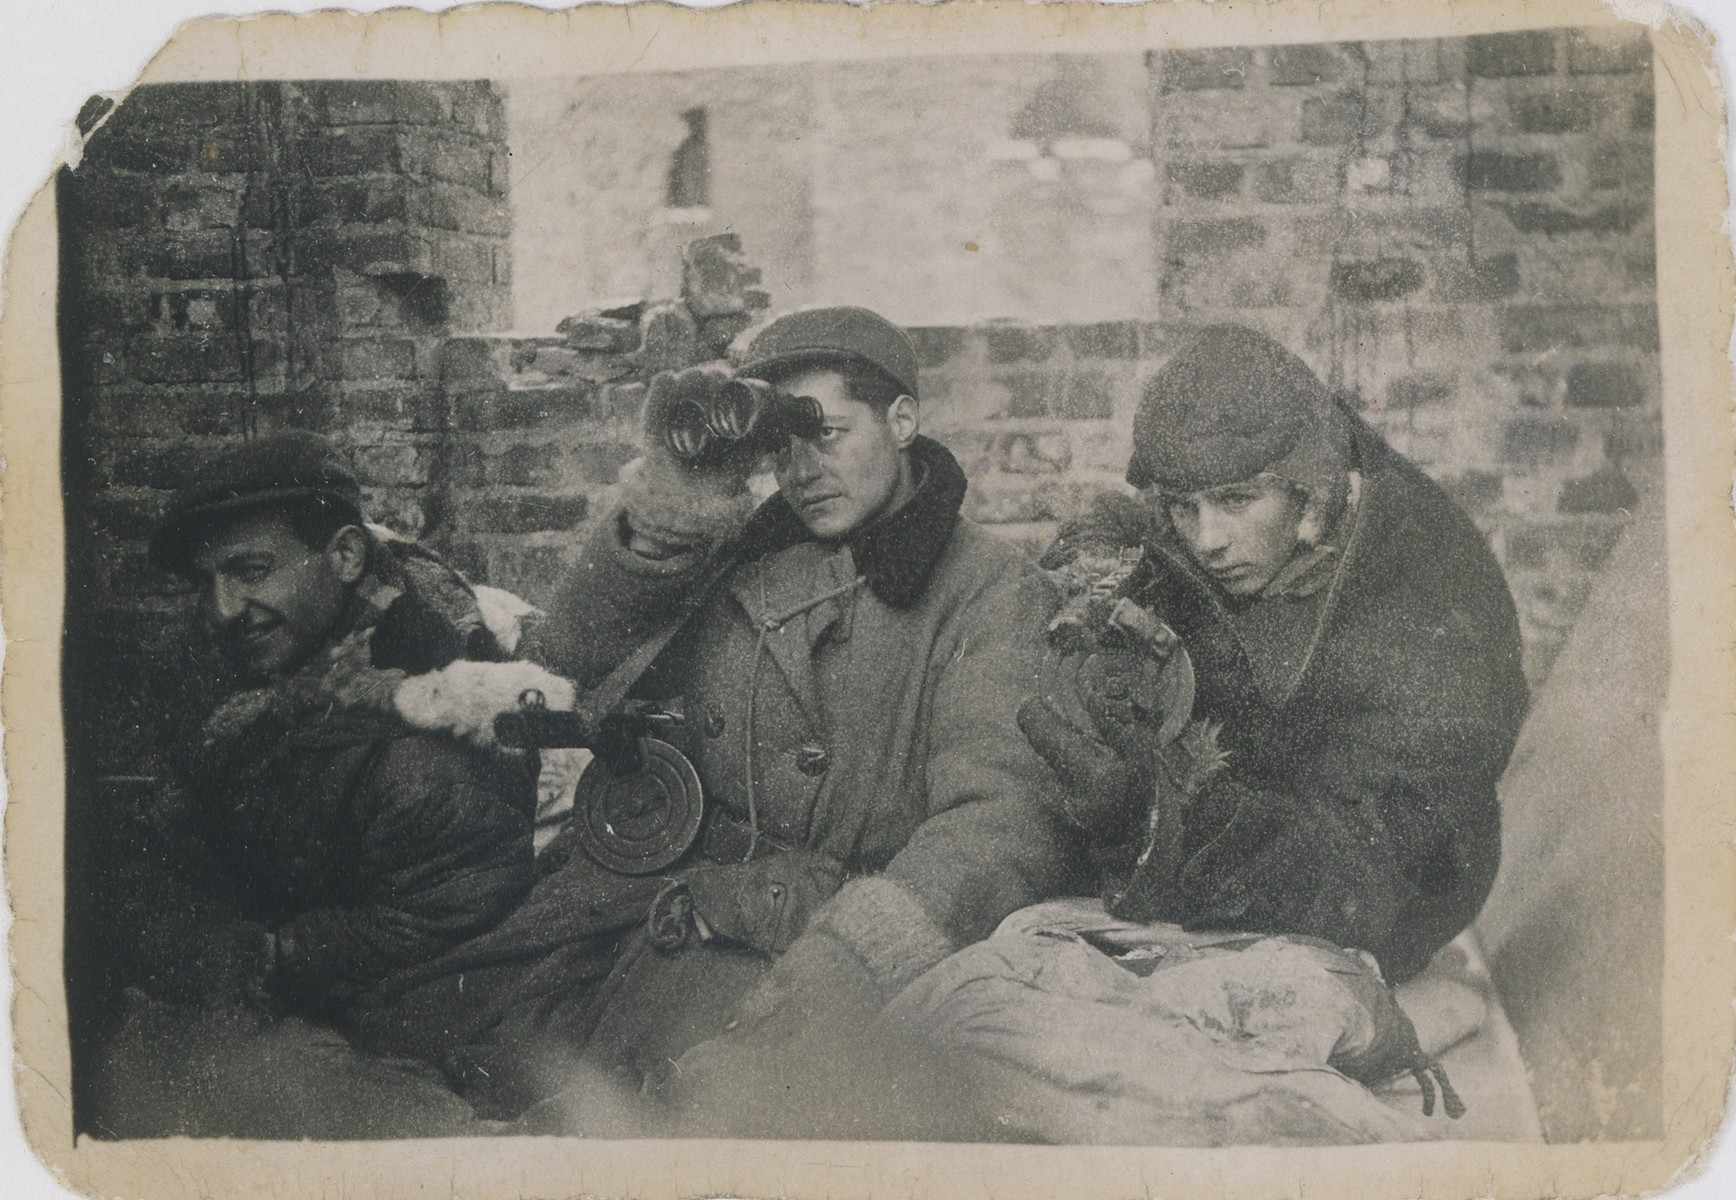 Jan Kostanski (right) crouches with Marek and Adas (right and center) in a bunker during the Warsaw uprising.